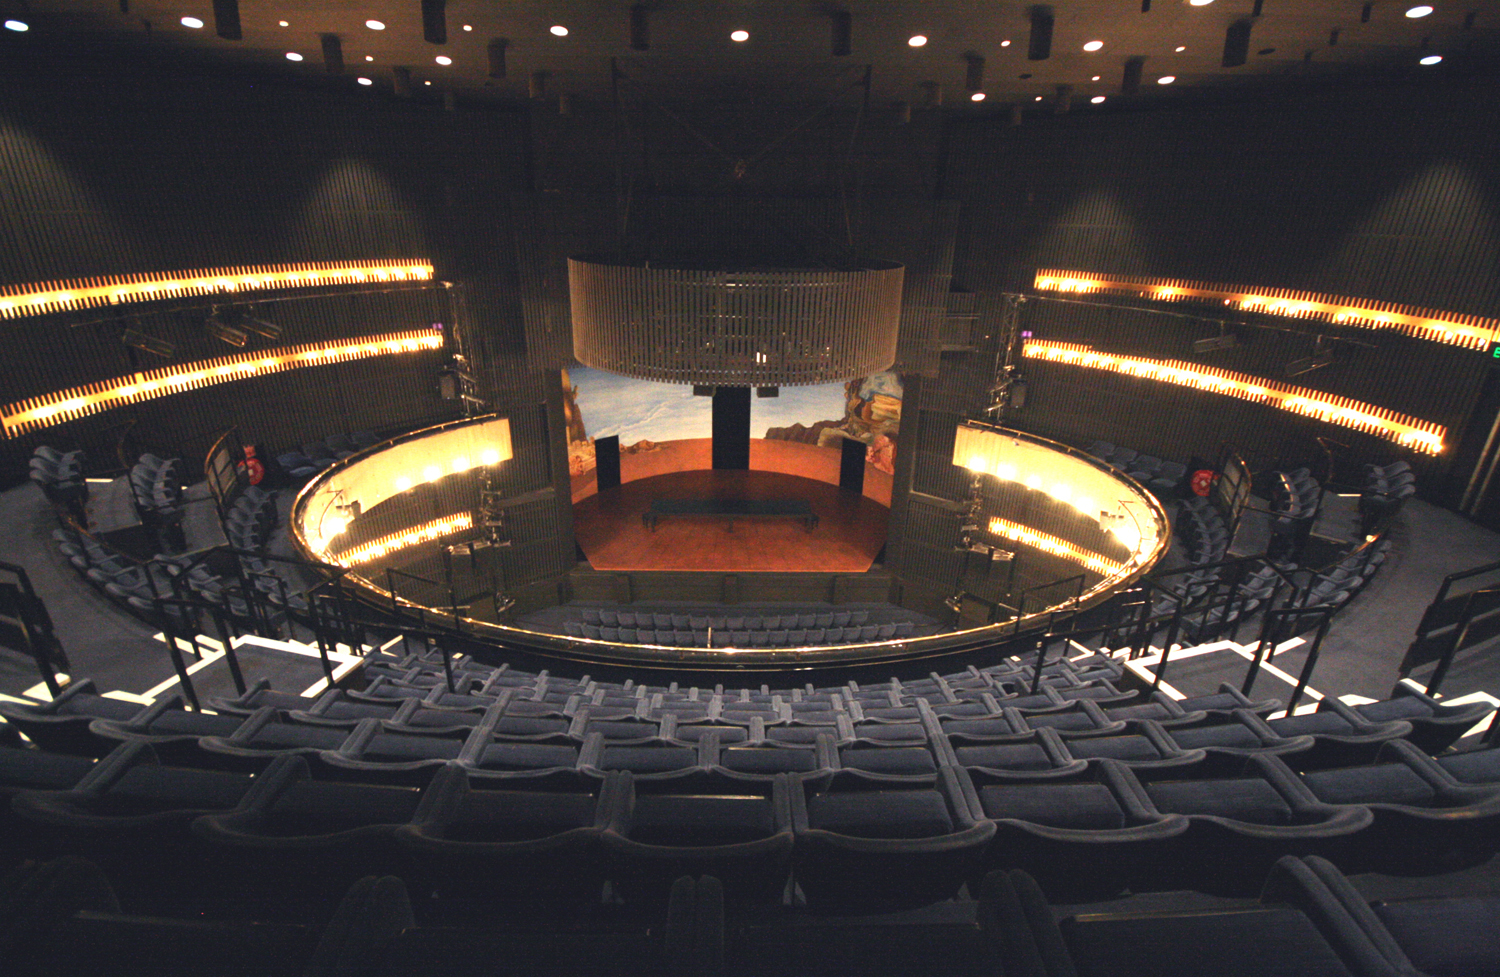 The auditorium viewed from the back of the circle